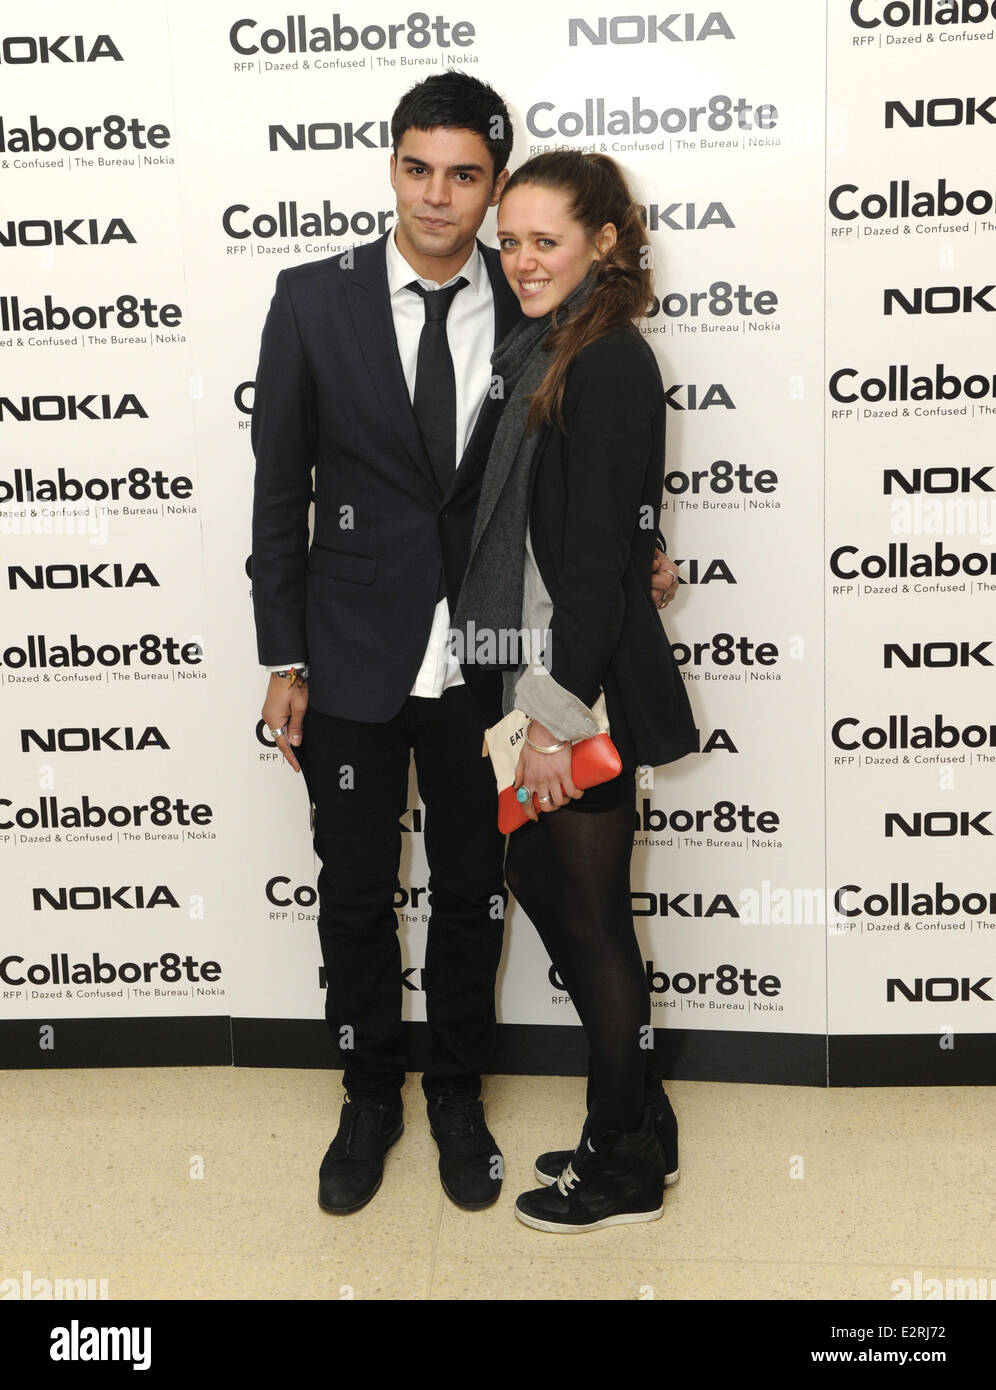 Collabor8te Connected by NOKIA Premiere at Regent Street Cinema  Featuring: Sean Teale and girlfriend Where: London, - Stock Image